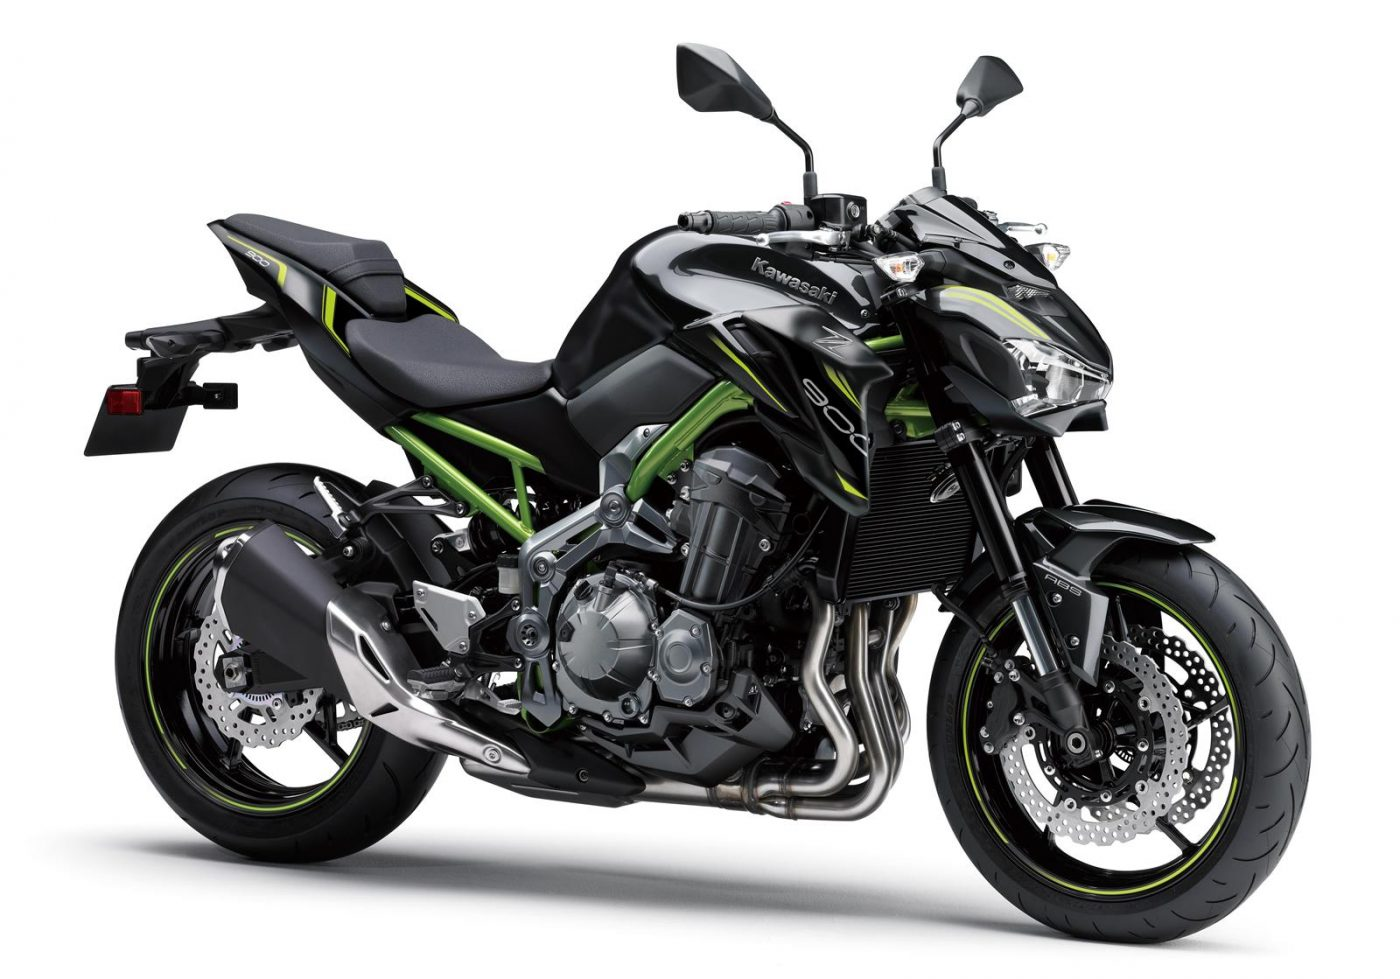 2019 Kawasaki Z900 Launched - Priced At Rs 7.68 Lakhs